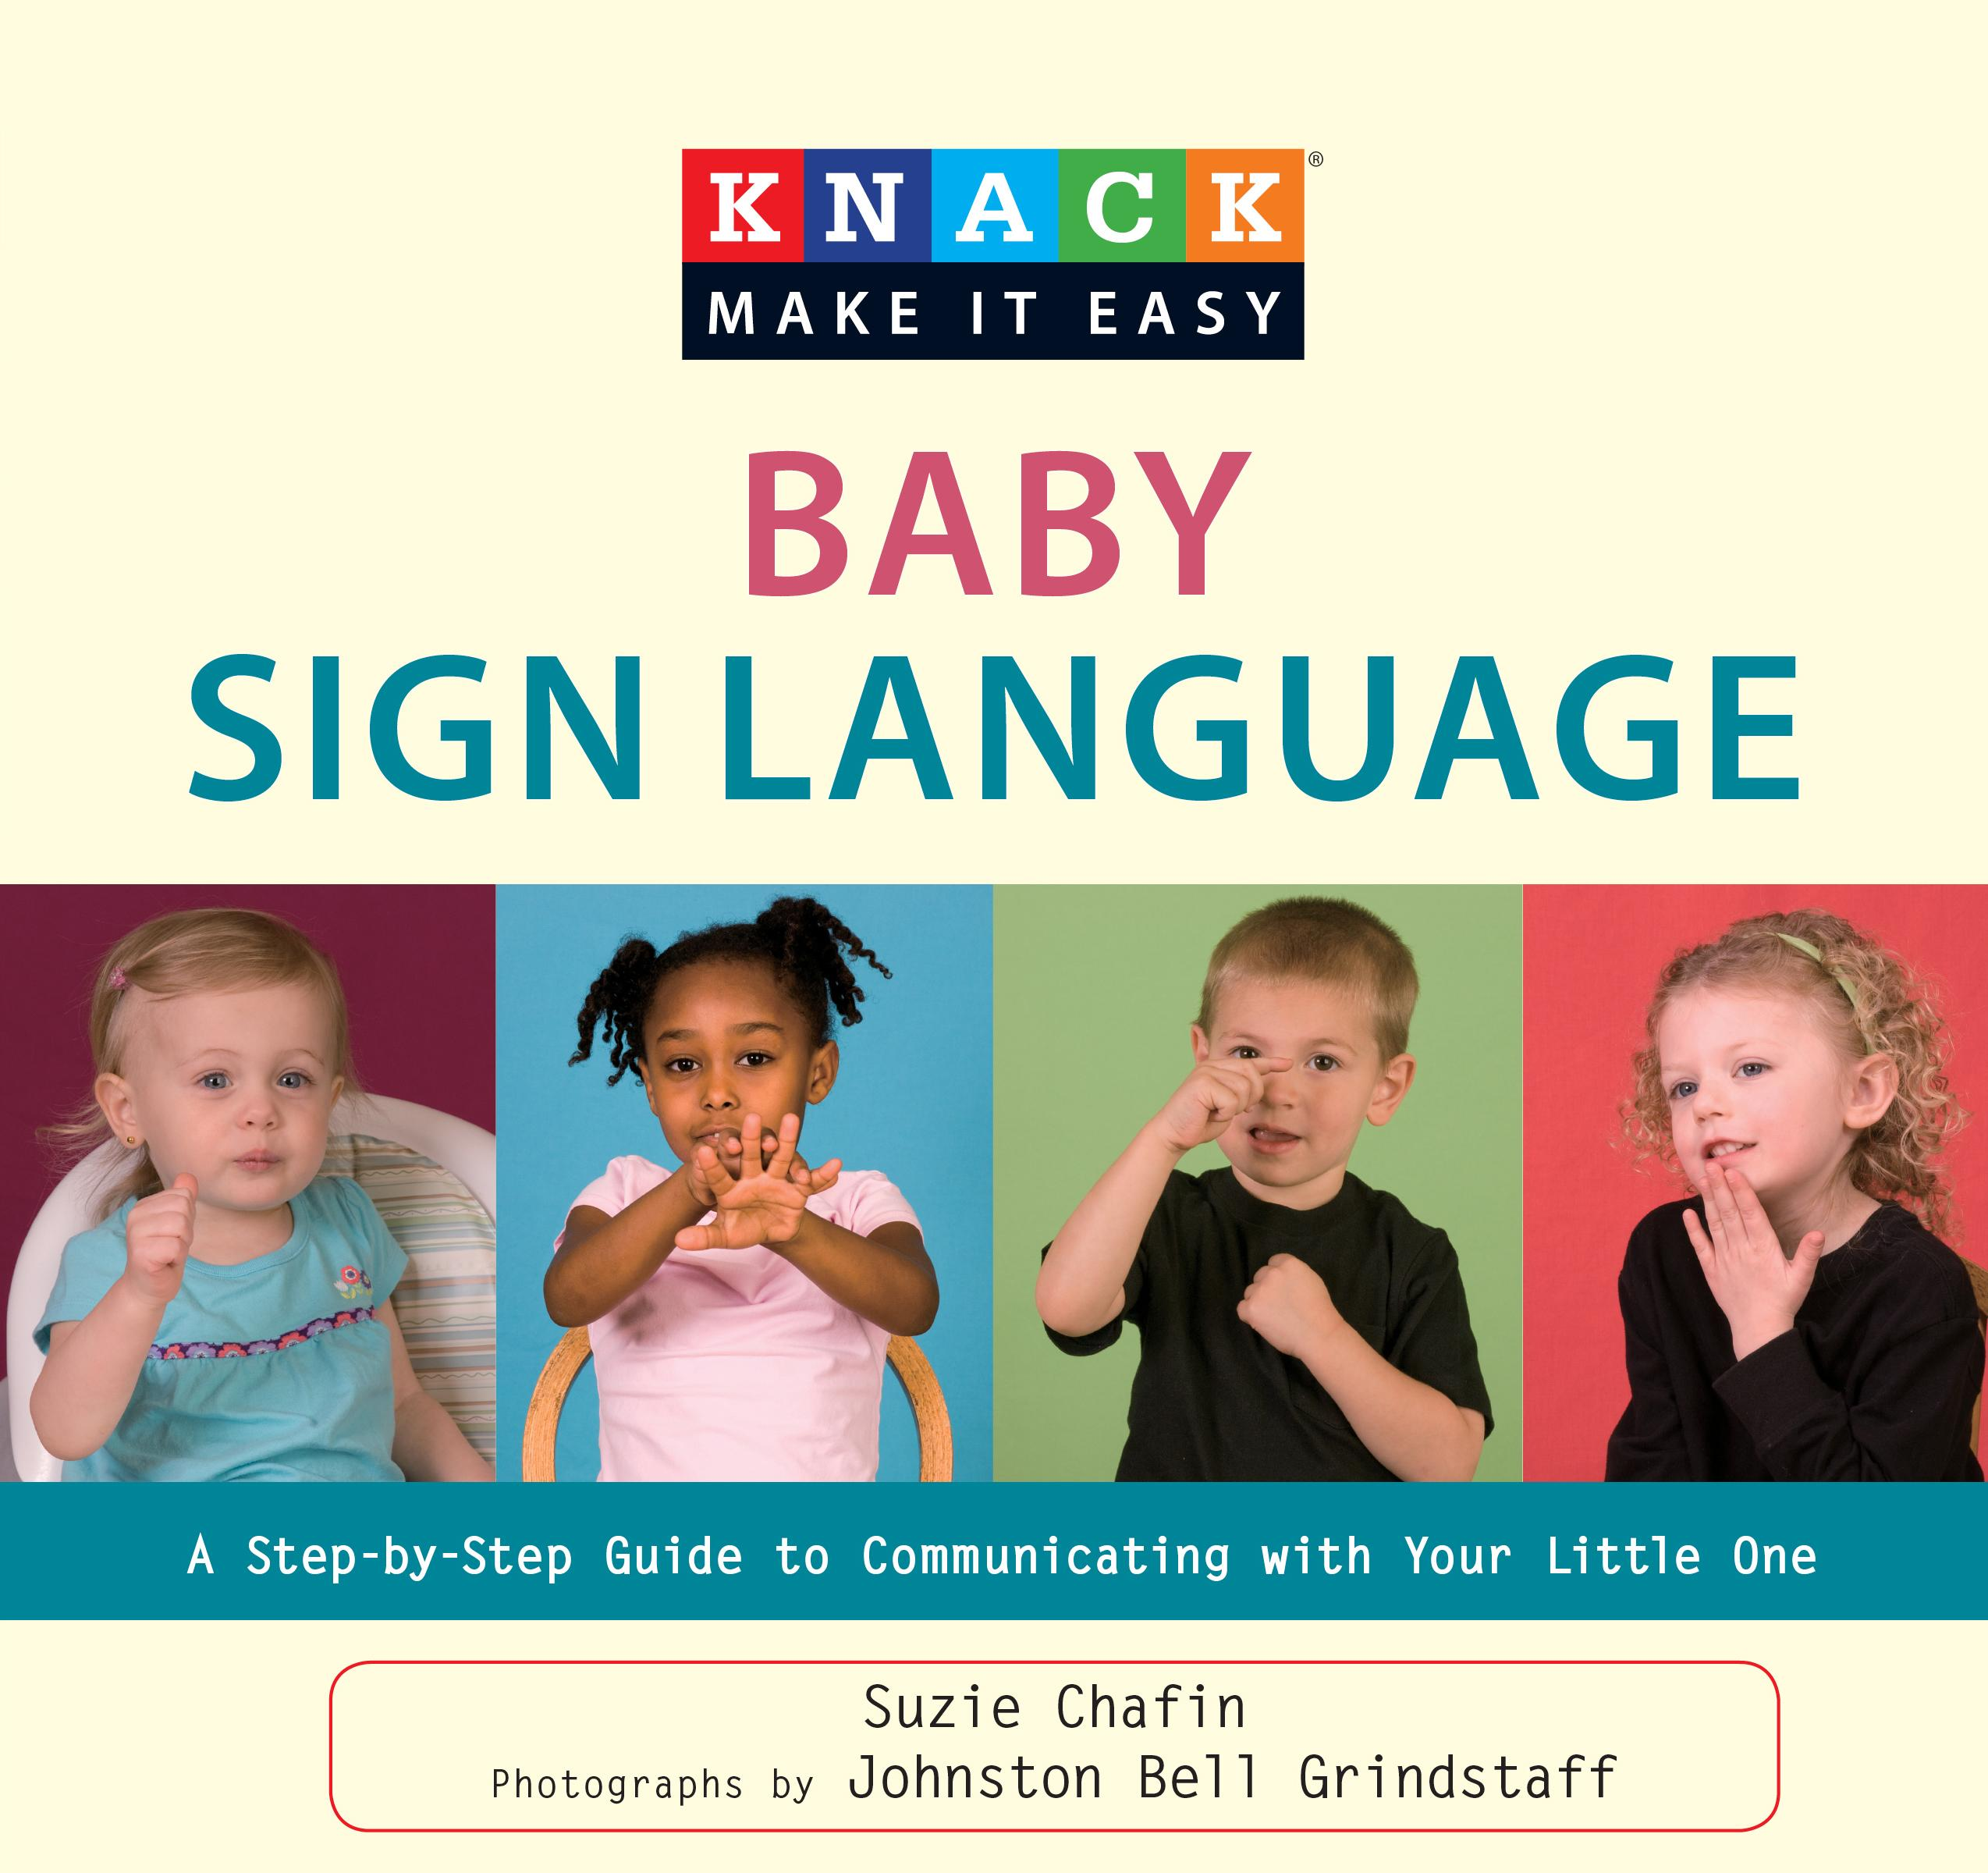 Knack: Make It Easy (Parenting): Knack Baby Sign Language: A Step-By-Step Guide to Communicating with Your Little One (Paperback)